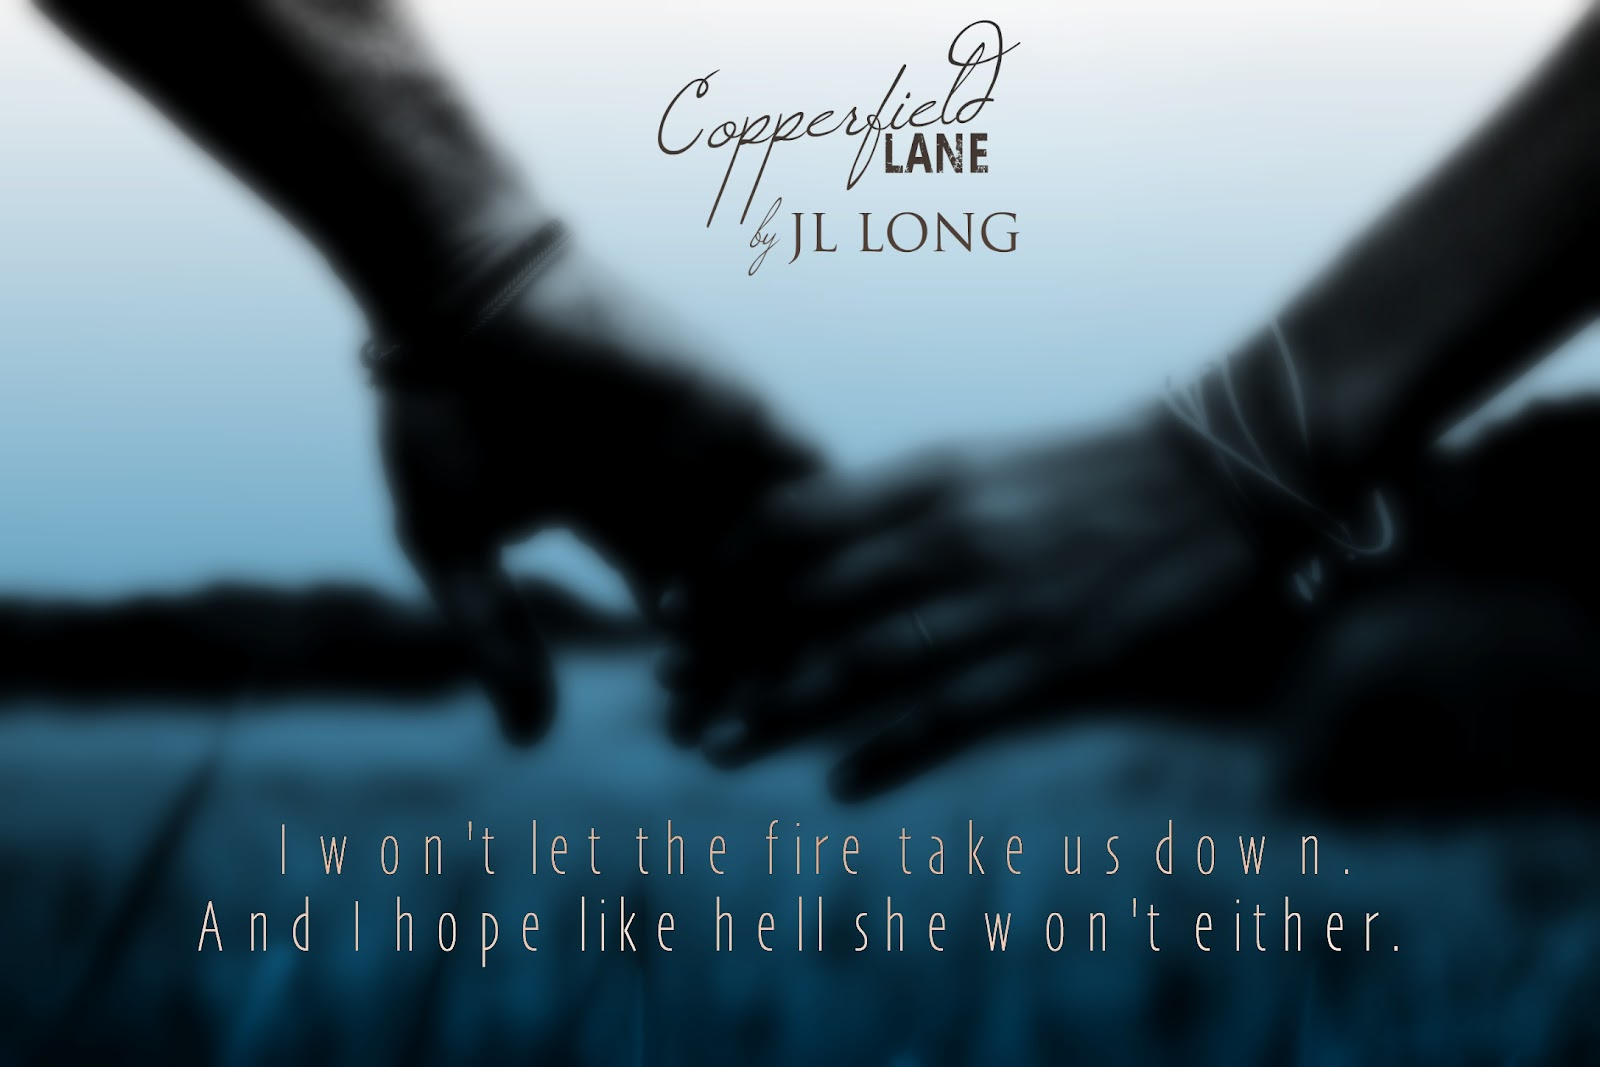 Copperfield_Lane_Teaser_6.jpg